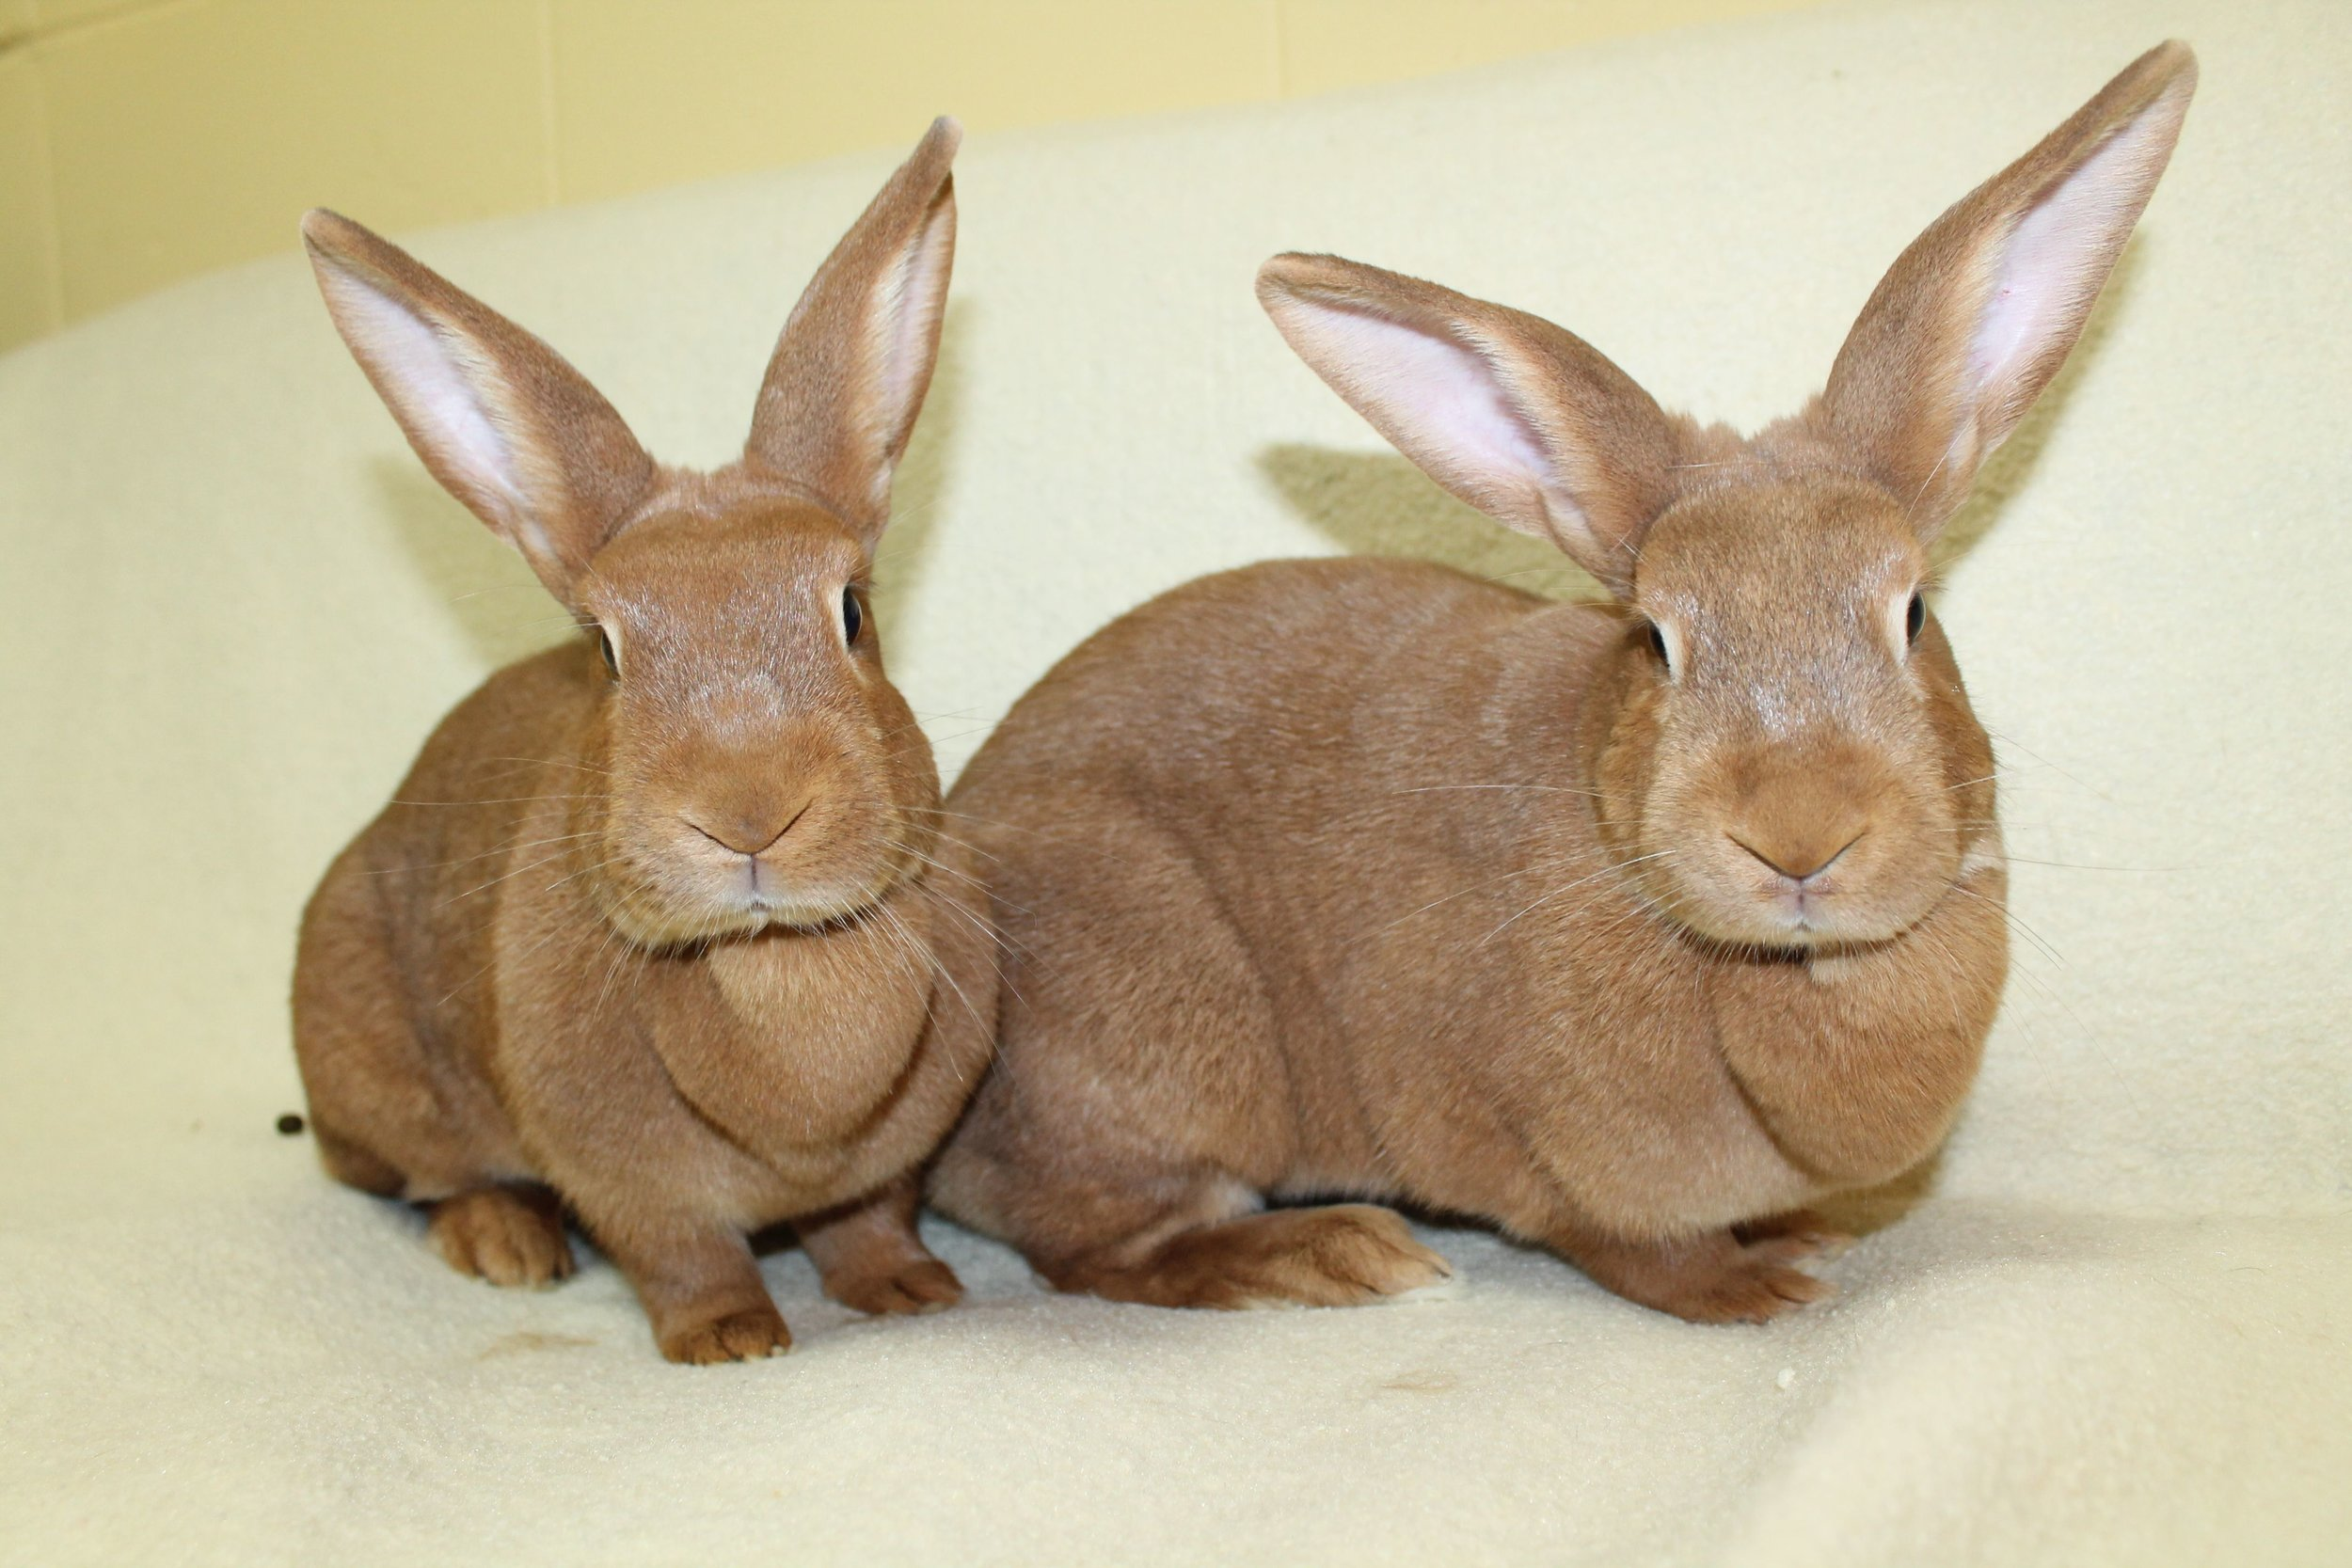 Scarlet and Ruby are a beautiful pair of bonded bunnies. They are very friendly and love to hang out with their human friends. Having a pair of rabbits is a wonderful experience as they share everything and snuggle together, groom each other and even share the same piece of lettuce! They will make you smile every day!